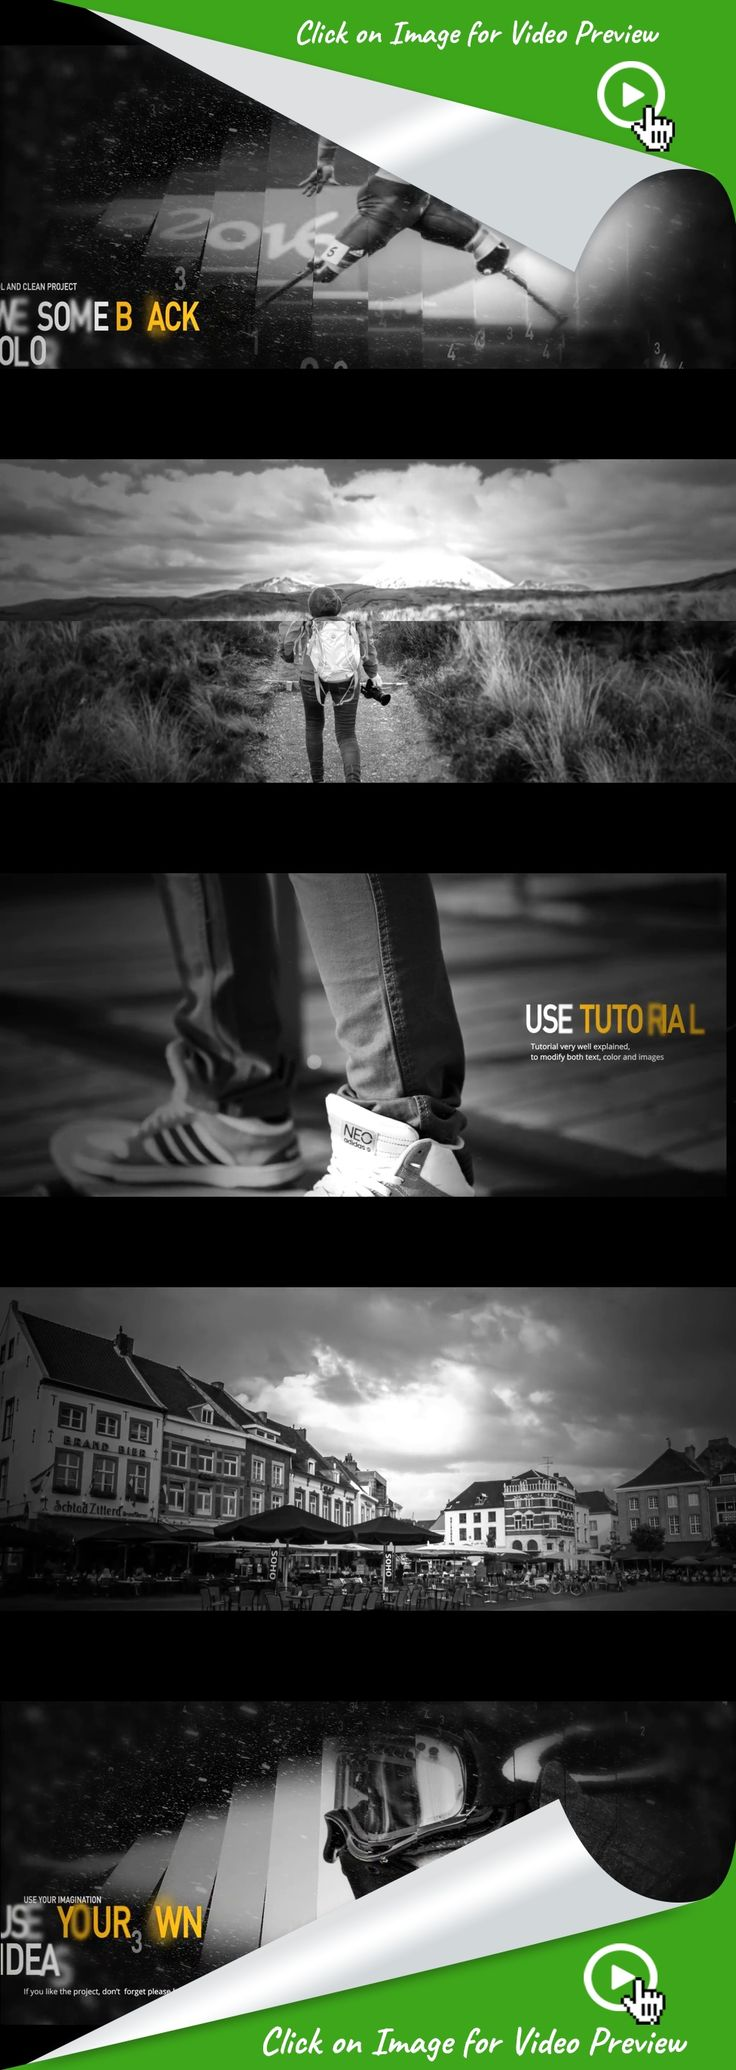 bland and white, cinematic, clean, elegant, film, gallery, memories, minimal, opener, photos, slides, slideshow, titles, trailer, travel, after effects templates, after effects ideas, after effects intro, after effects intro, after effects motion graphics, intro ideas youtube, after effects projects, videohive projects Features    Project Compatible with CS6 and Above. Full HD 1920×1080 and HD 1280×720. Project Very Well Organized. Video Tutorial Included. Use Photos or Videos. No Plugins...